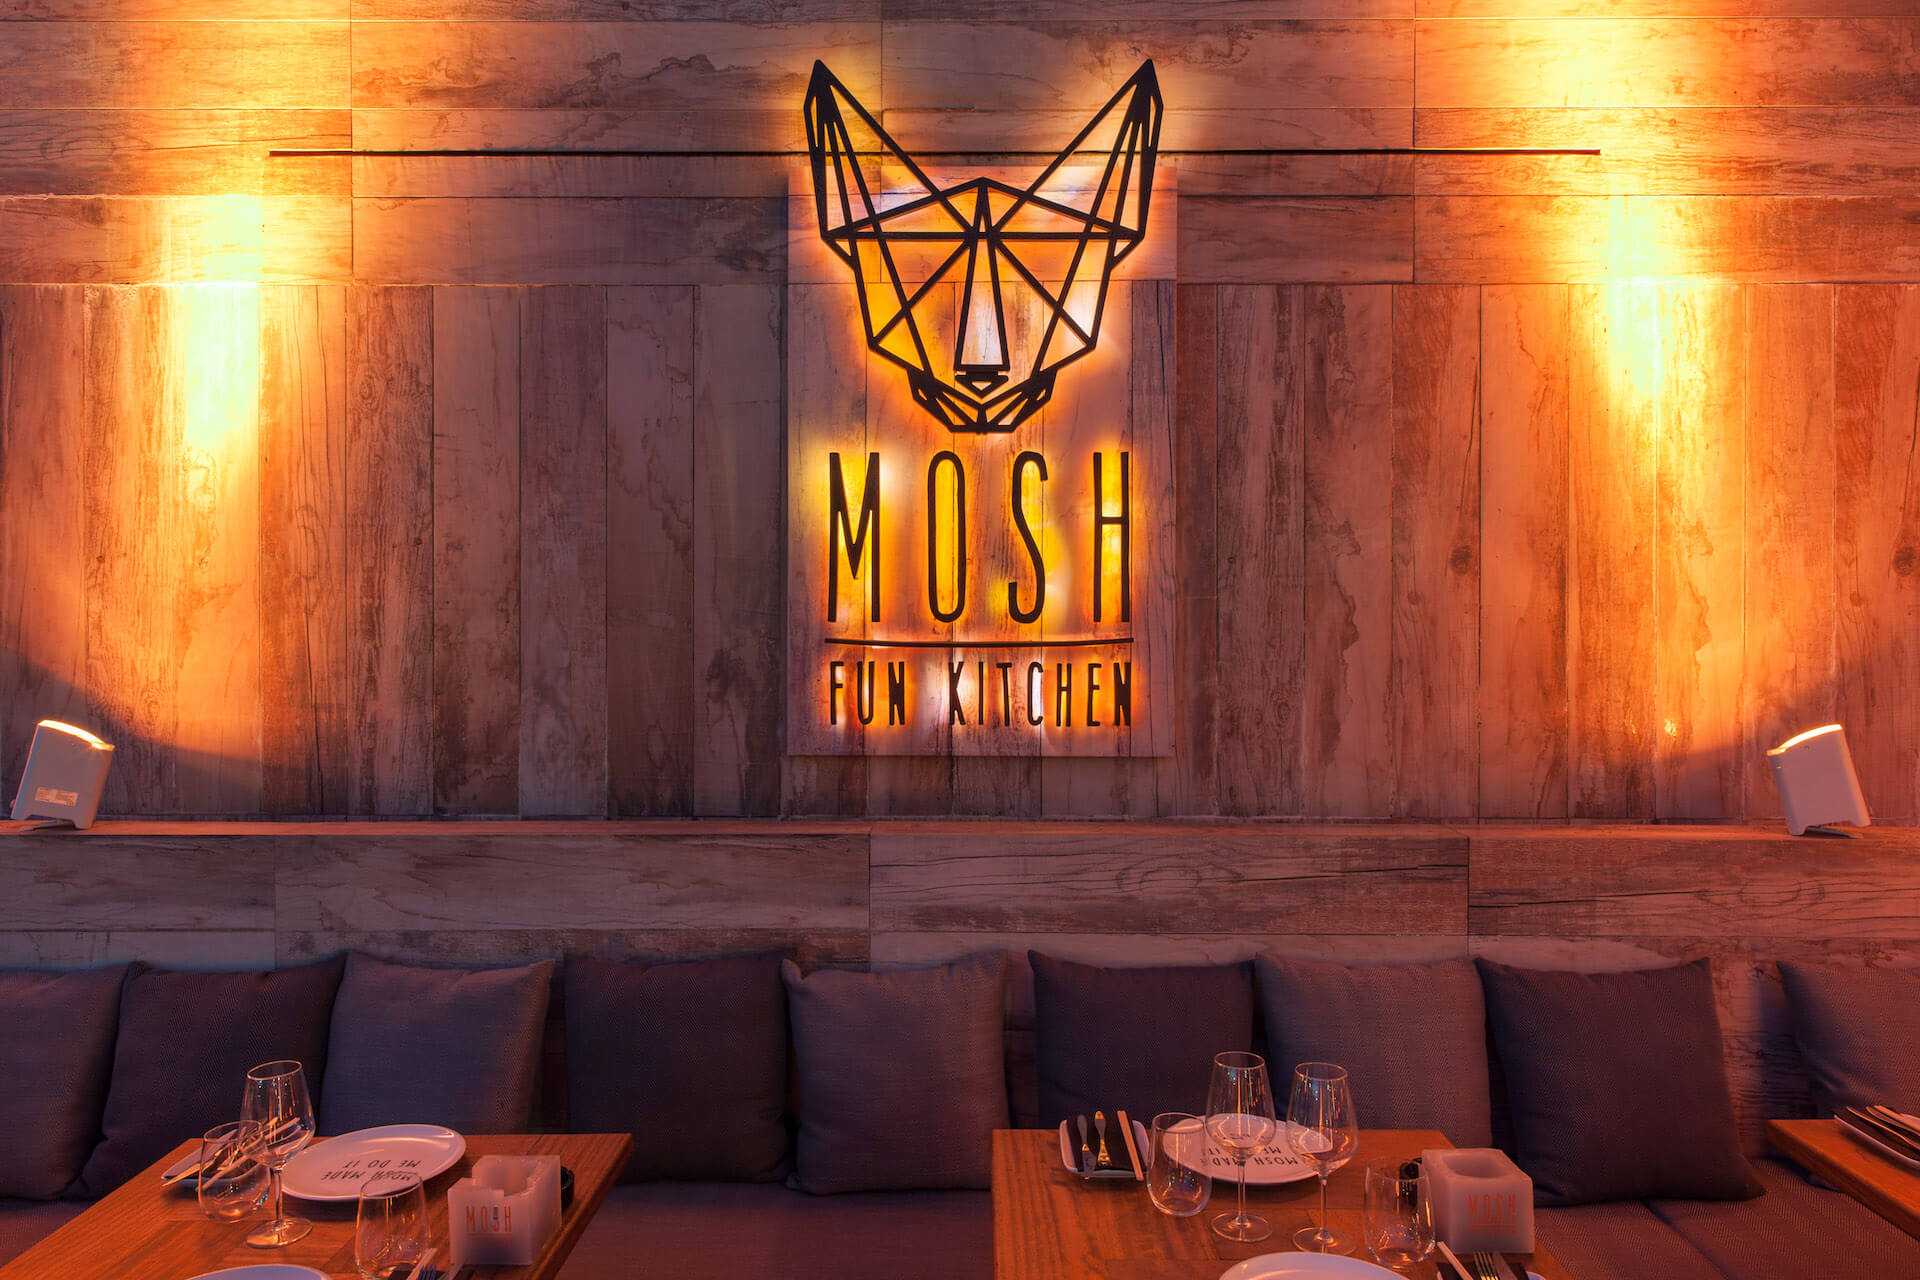 Mosh Fun Kitchen